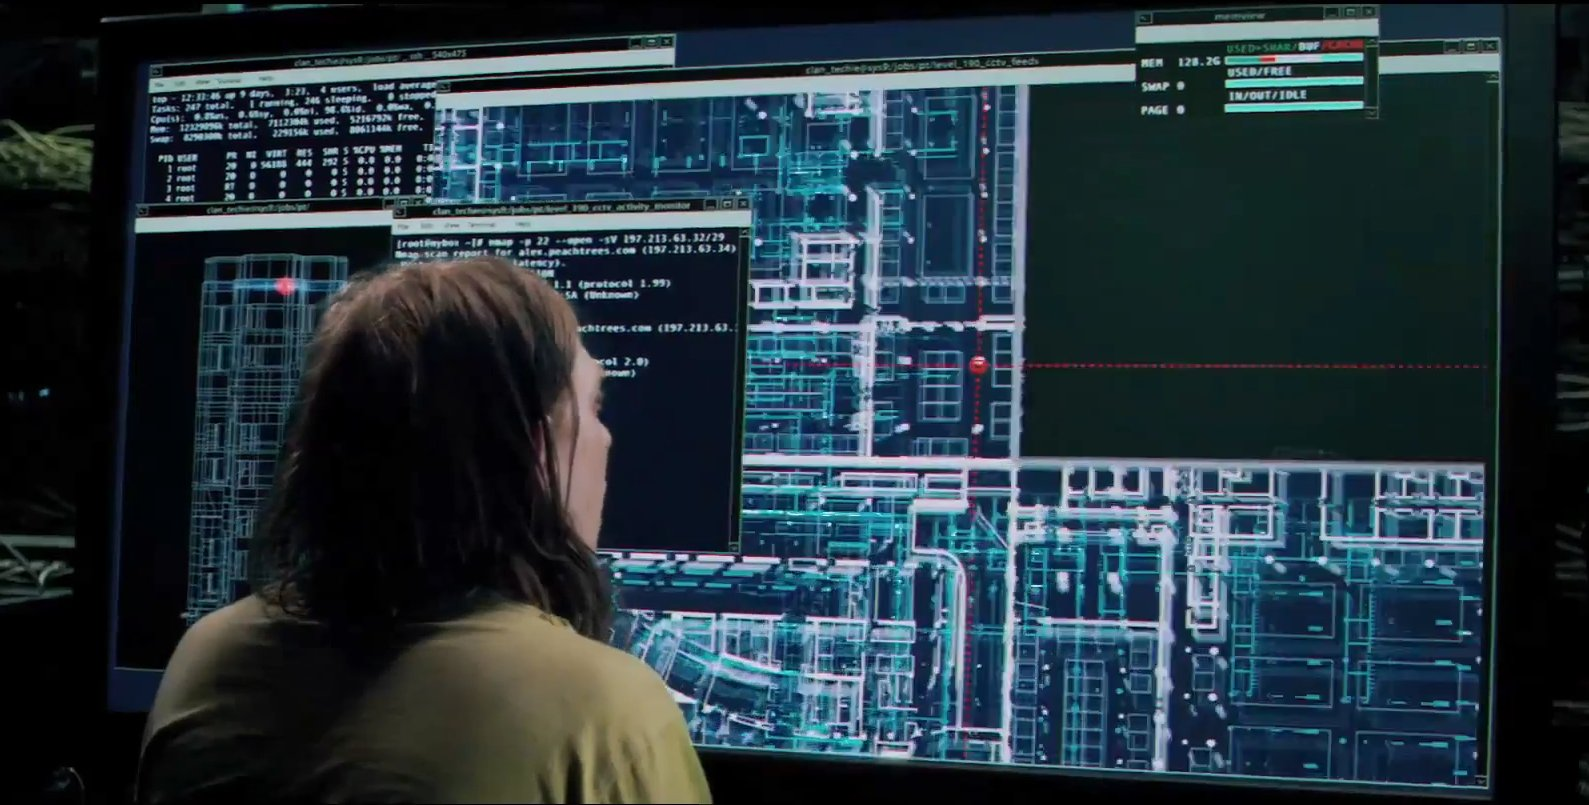 dredd-nmap-trailer-screenshot-1589x805